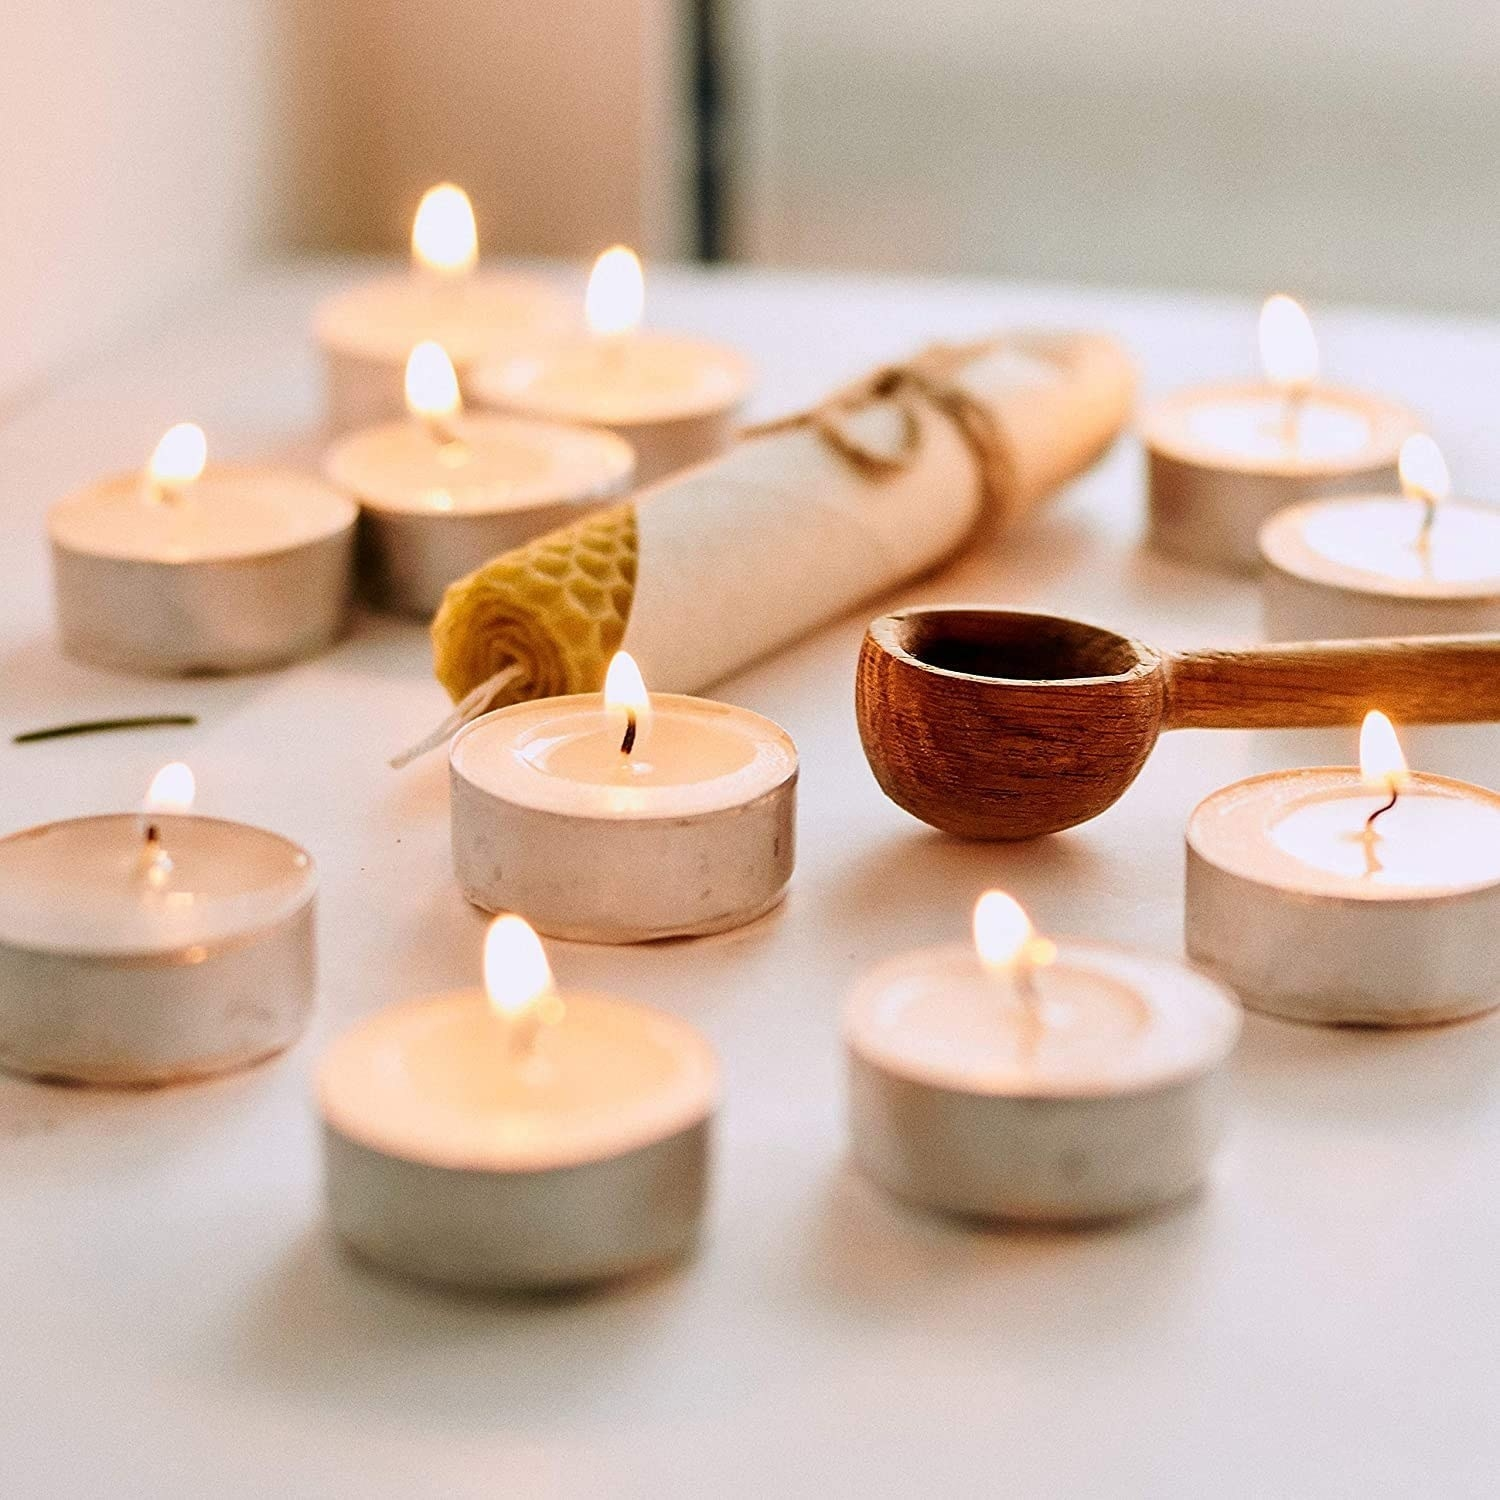 Several tiny candles aflame beside a wooden spoon and beeswax